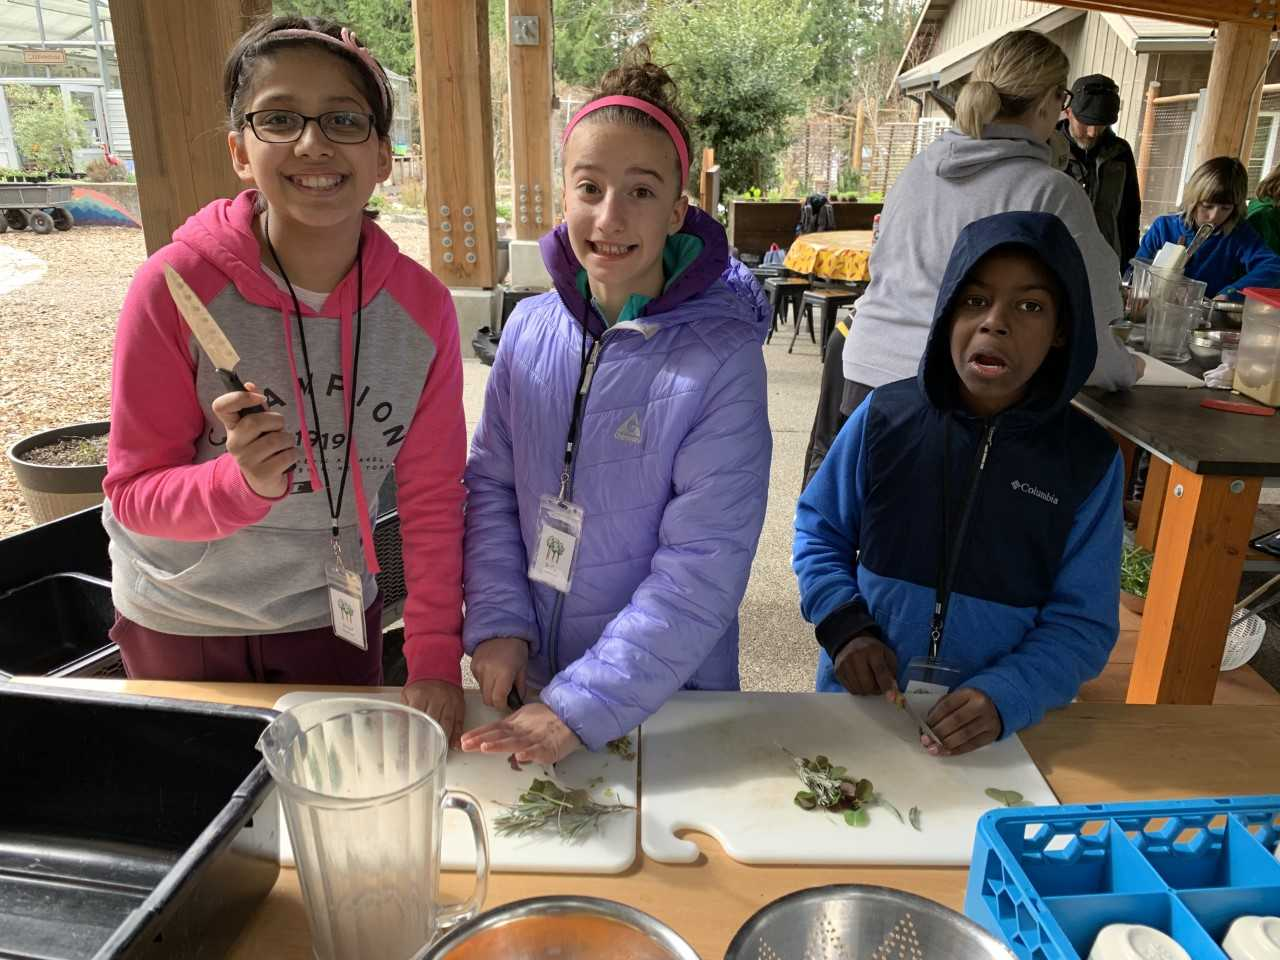 Three School Overnight Program students make food together in the garden.